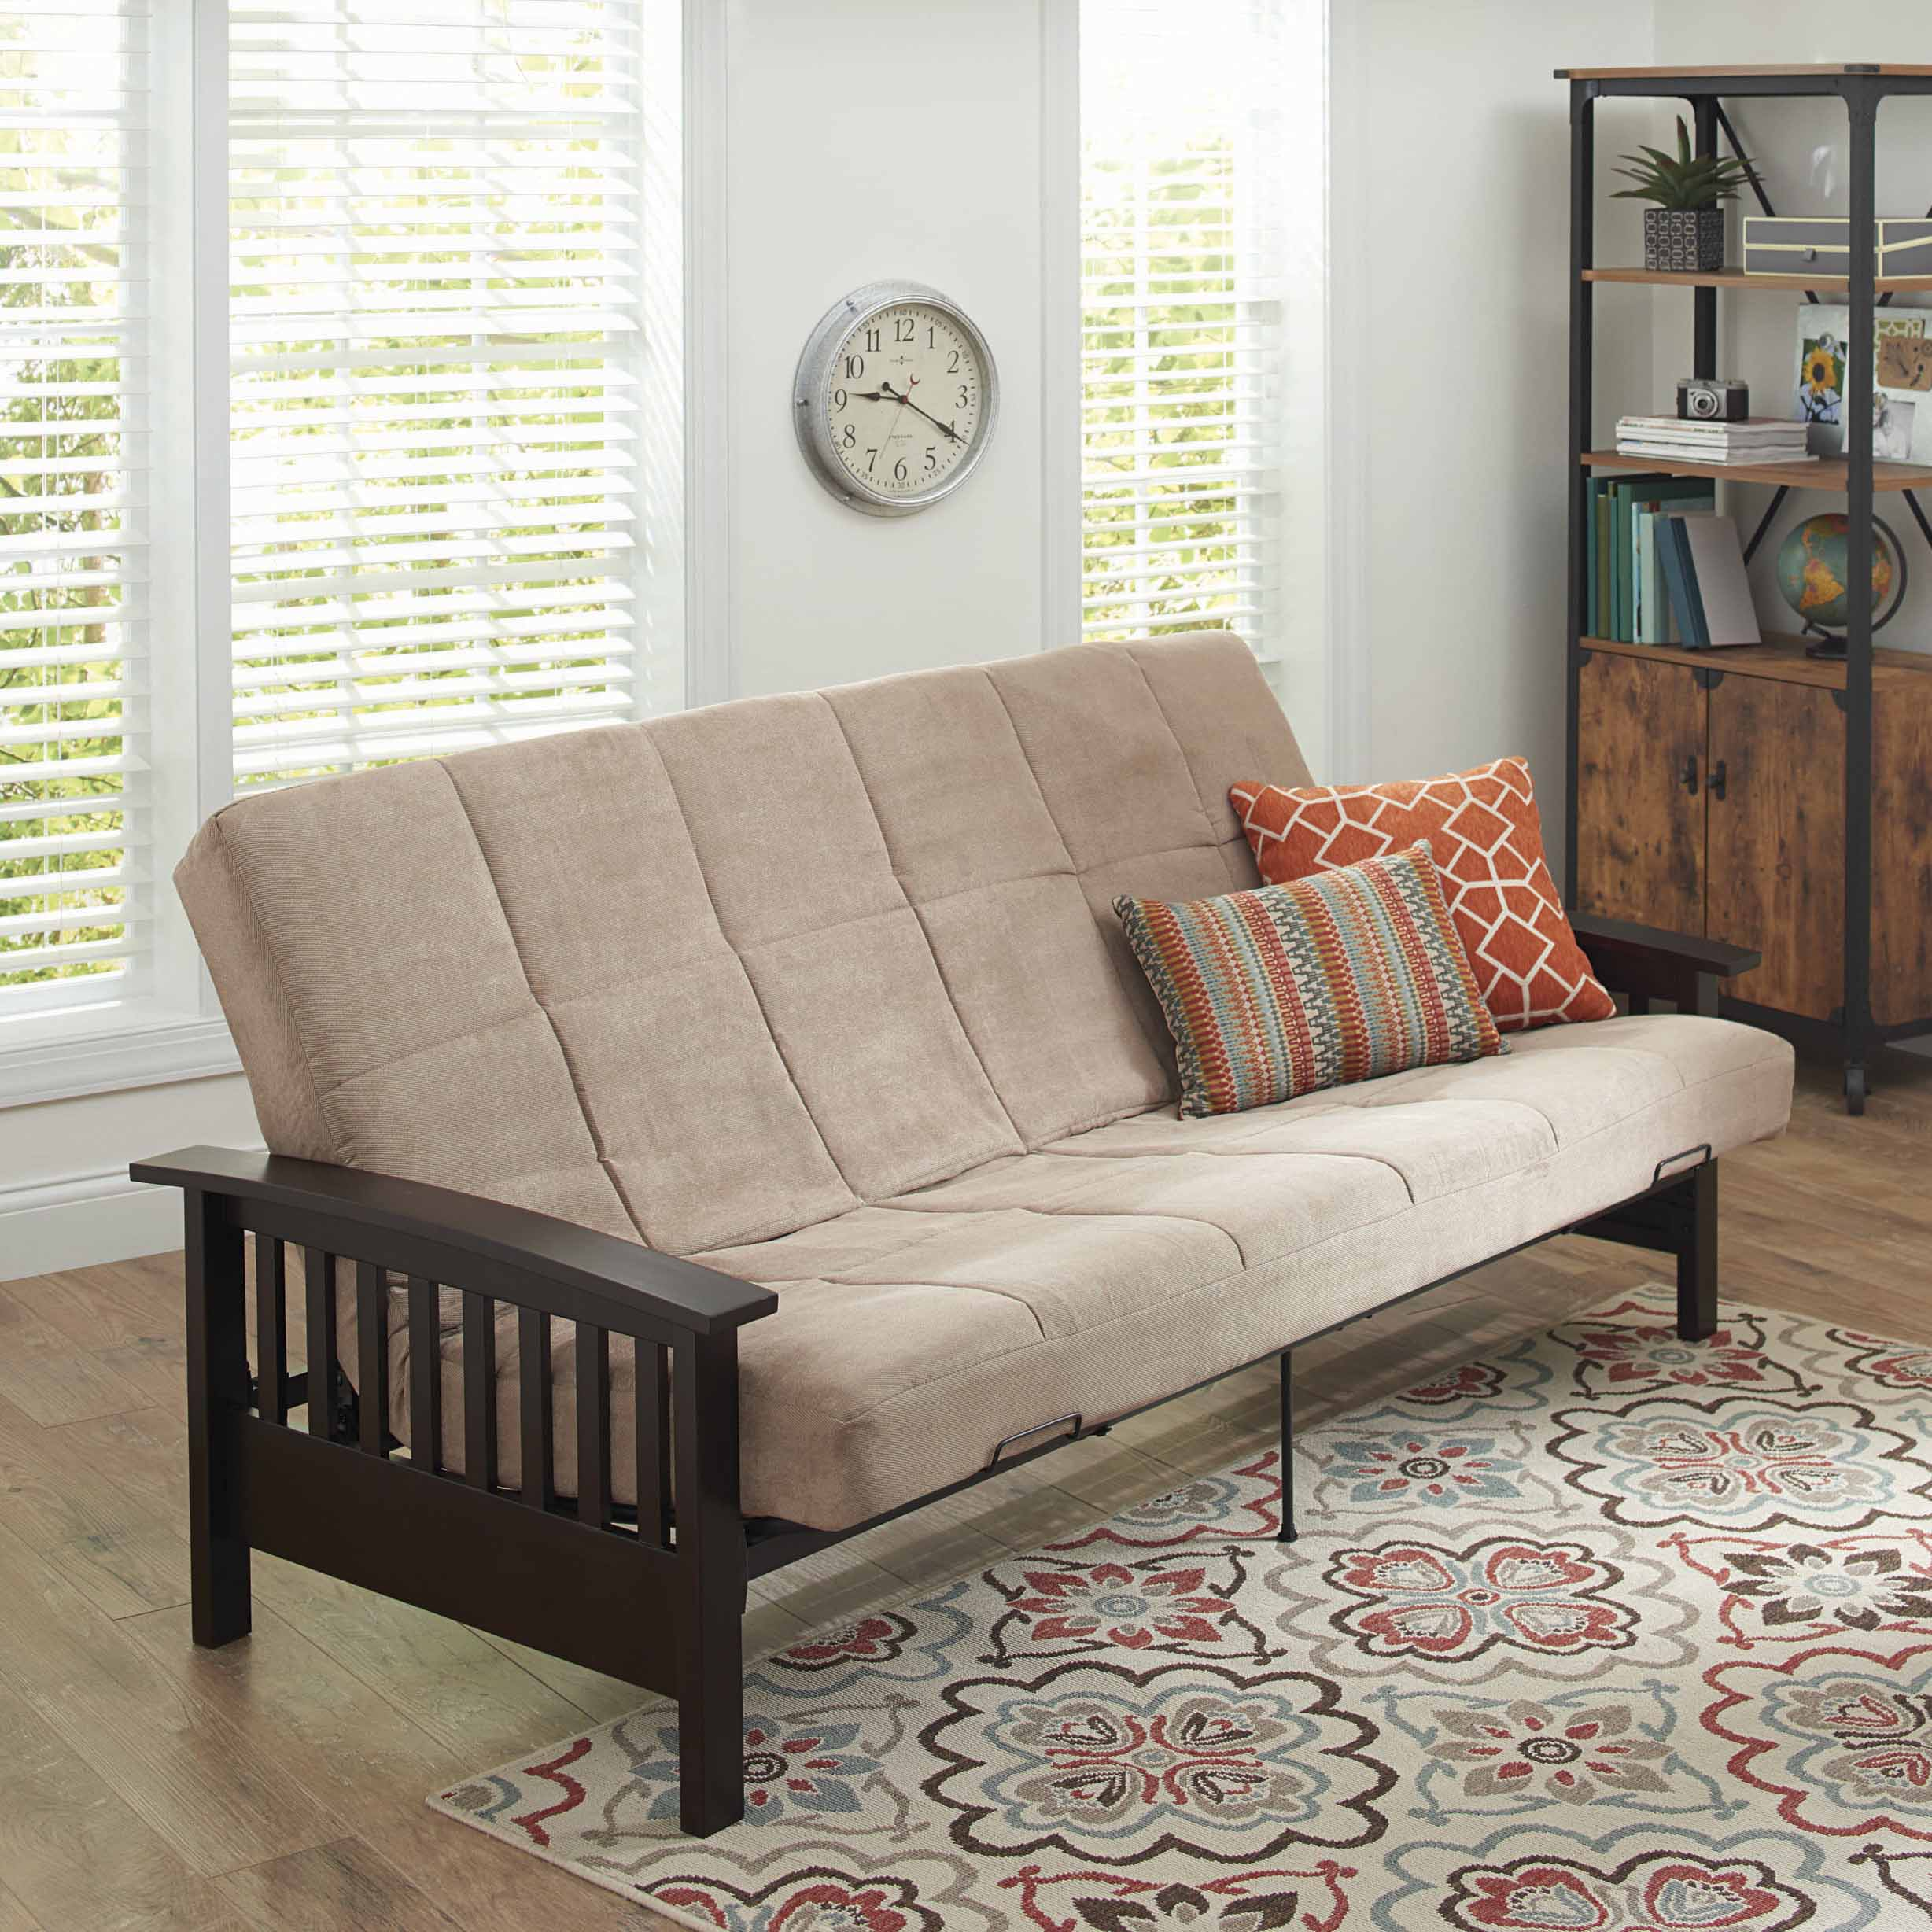 Better Homes and Gardens Mission Wood Arm Futon, Multiple Colors